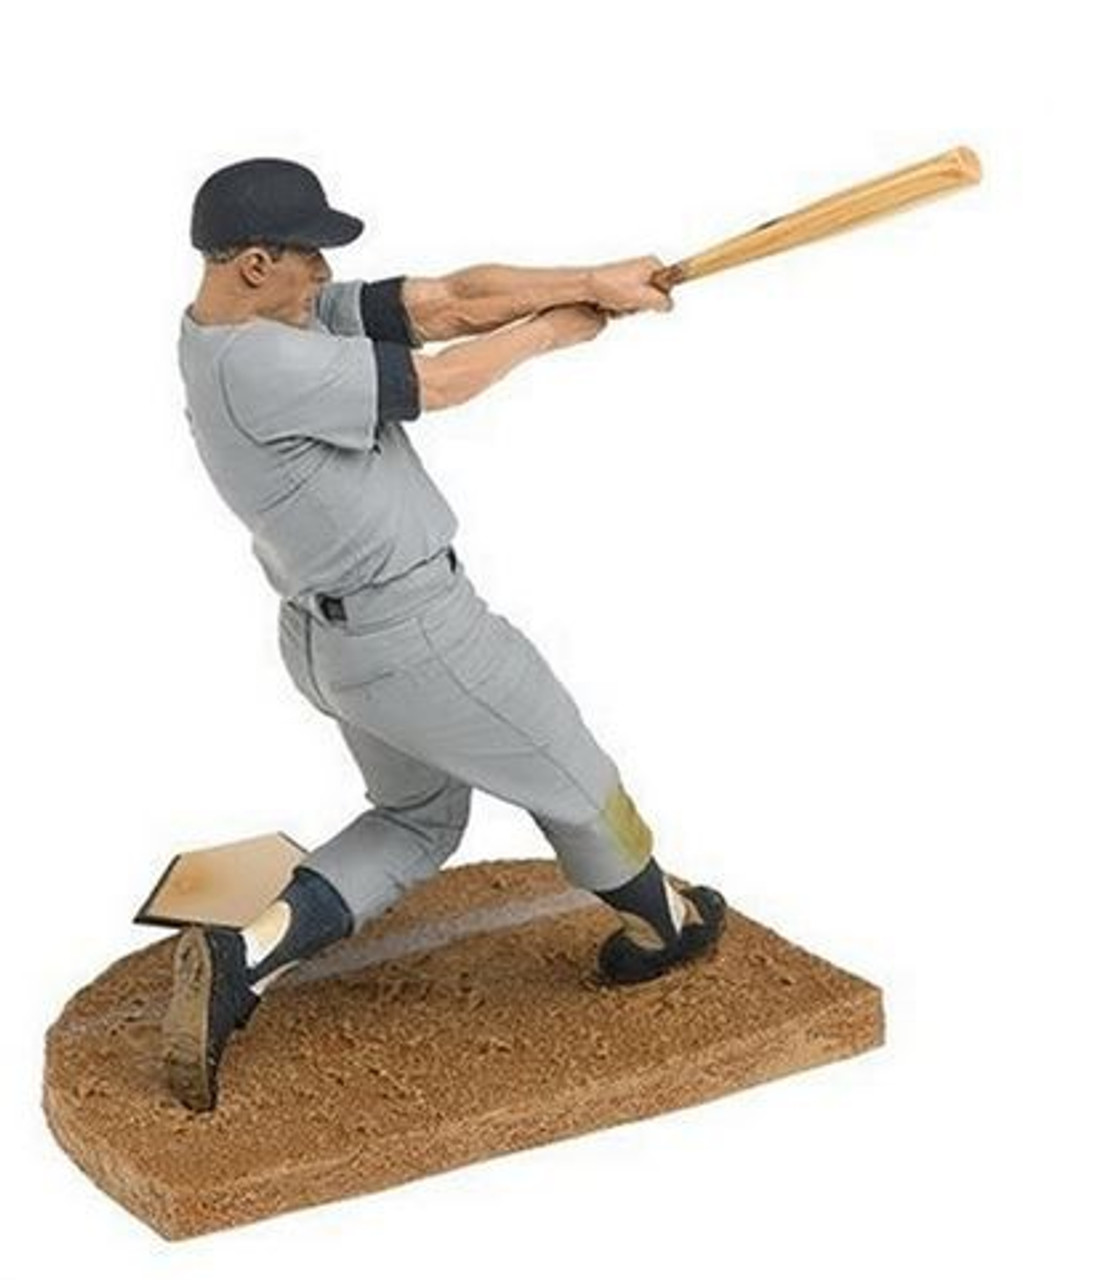 McFarlane Toys MLB Cooperstown Collection Series 3 Mickey Mantle Action Figure